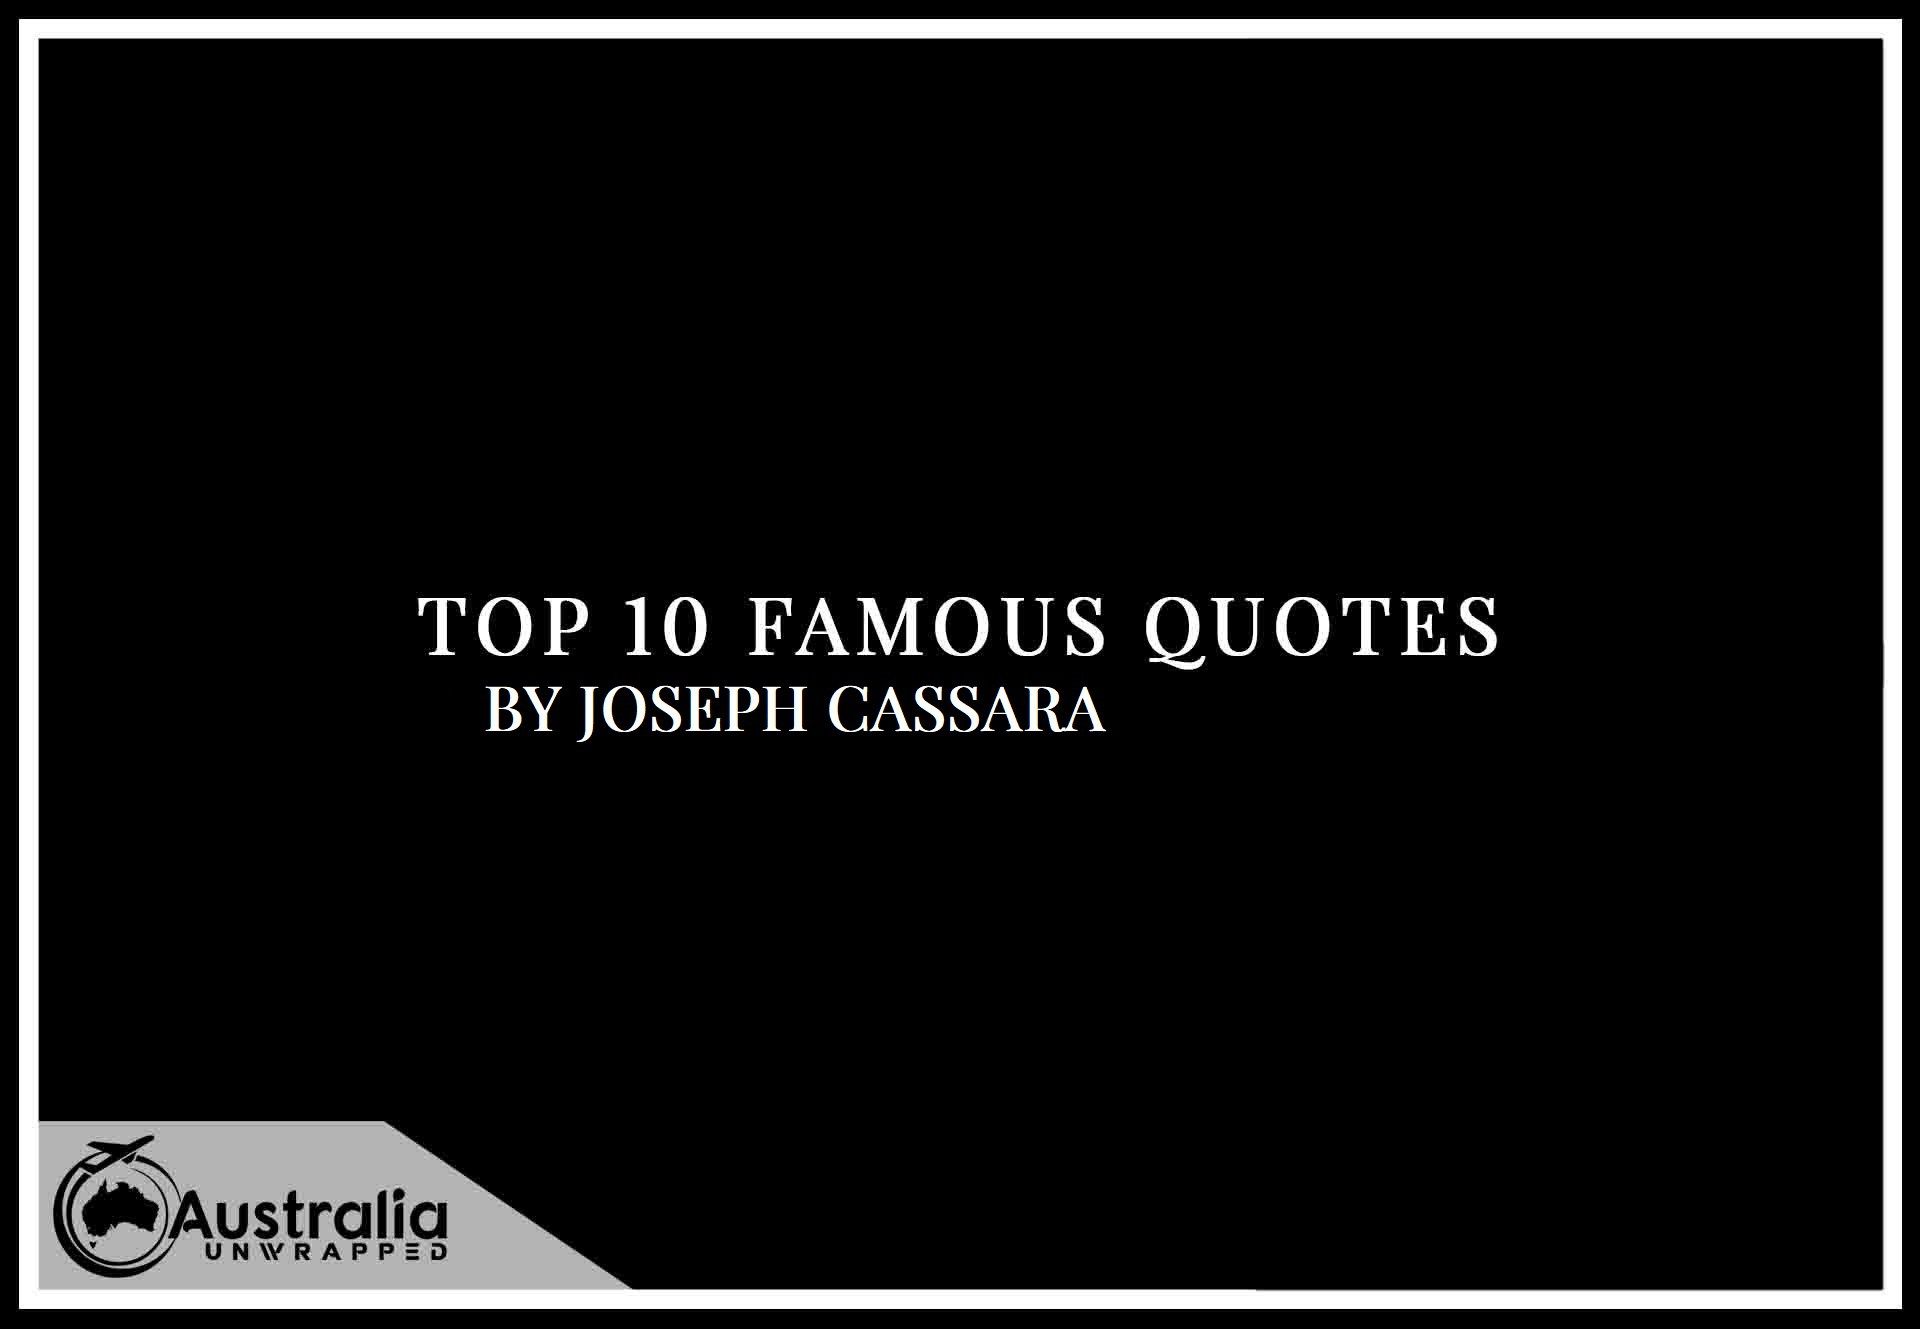 Top 10 Famous Quotes by Author Joseph Cassara